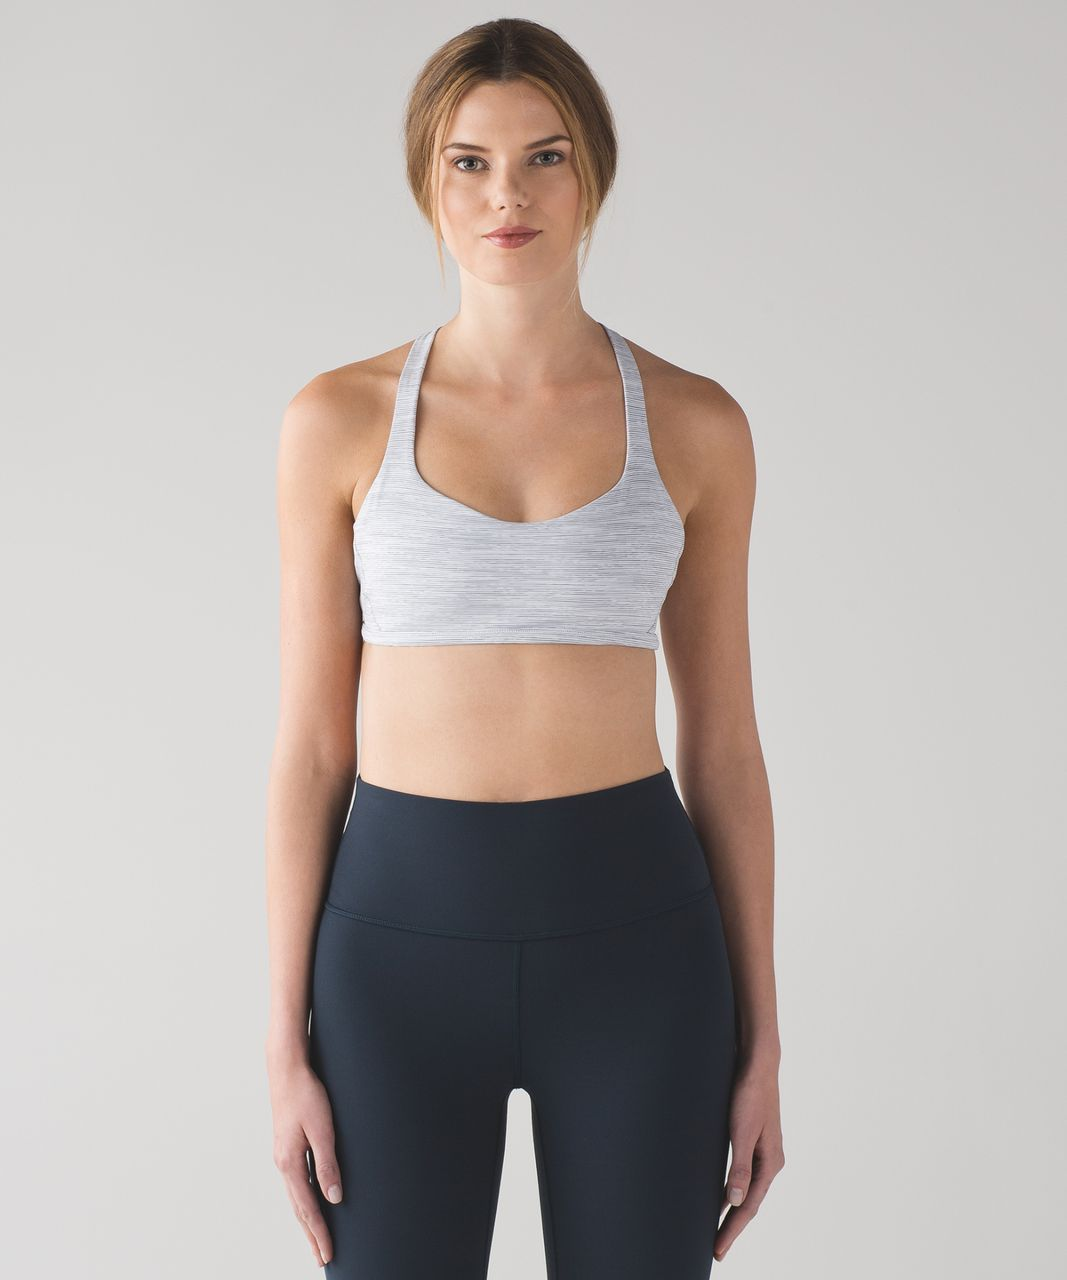 Lululemon Free To Be Zen Bra - Wee Are From Space Alpine White Battleship